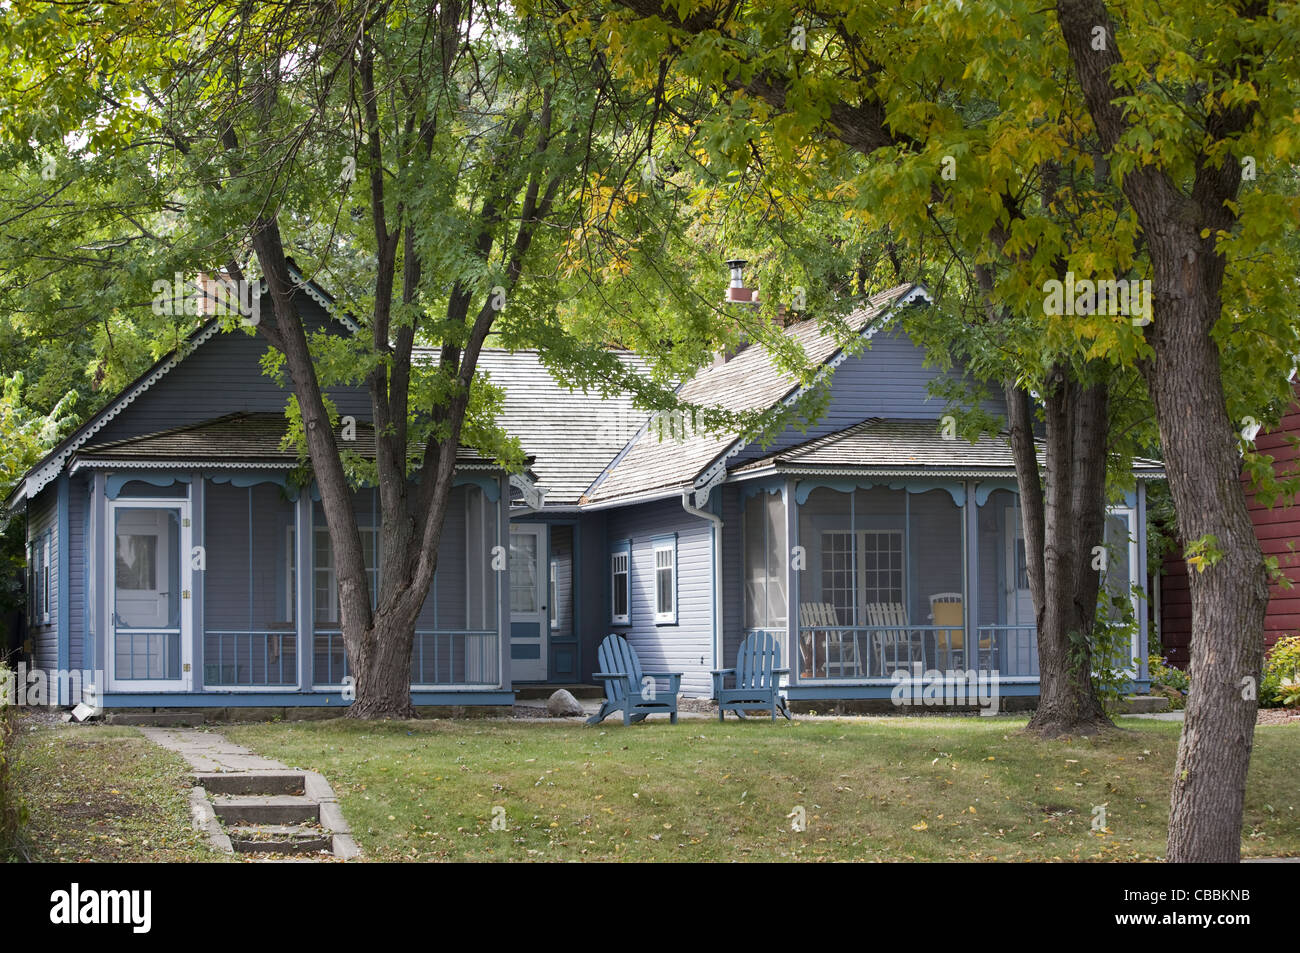 The Loren L. Chadwick Cottages are located in the Linden Hills neighborhood of Minneapolis, Minnesota. - Stock Image